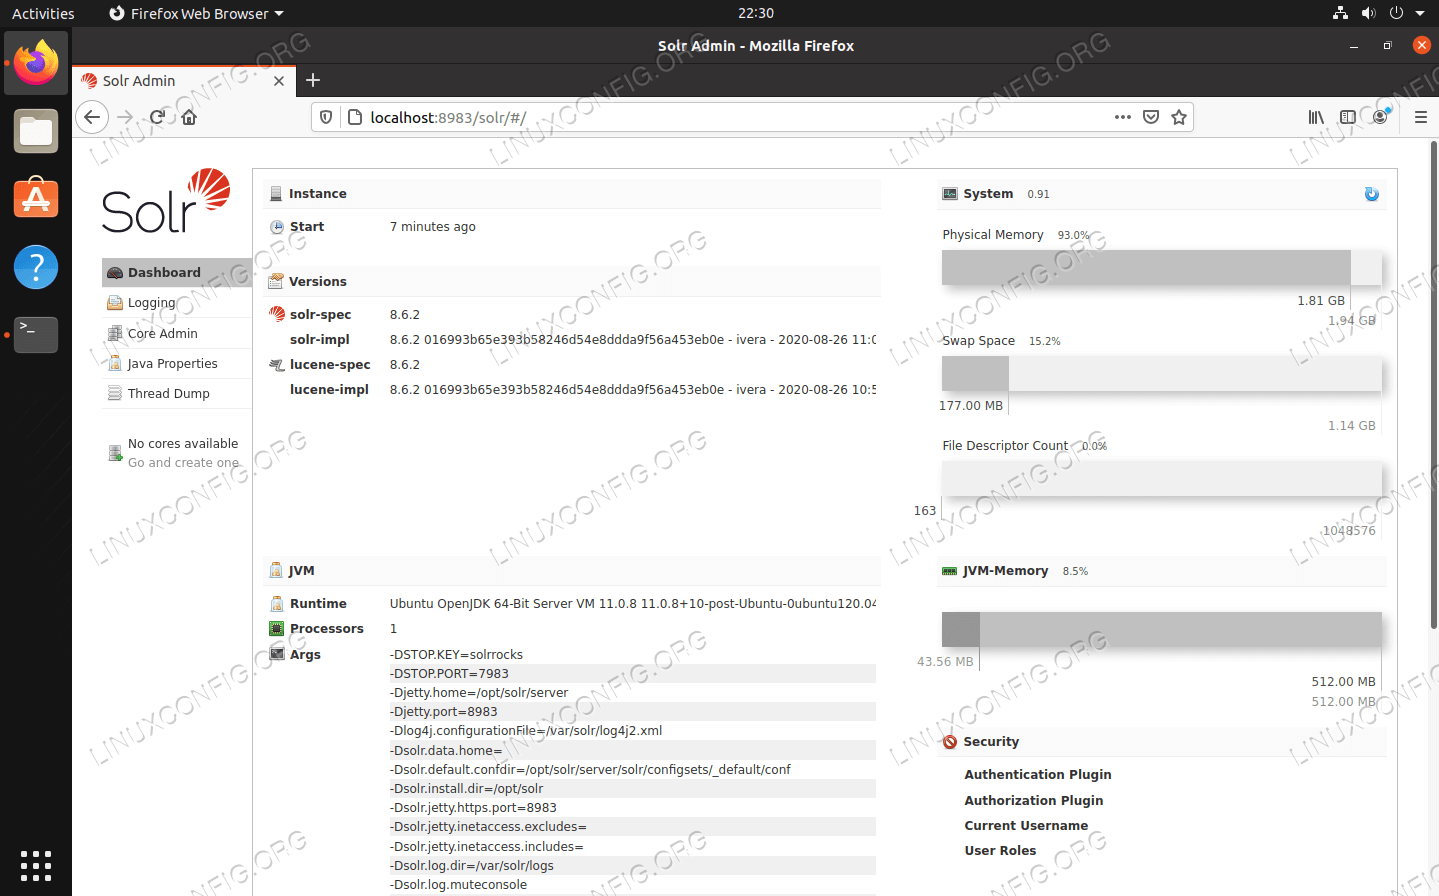 Apache Solr installed on Linux